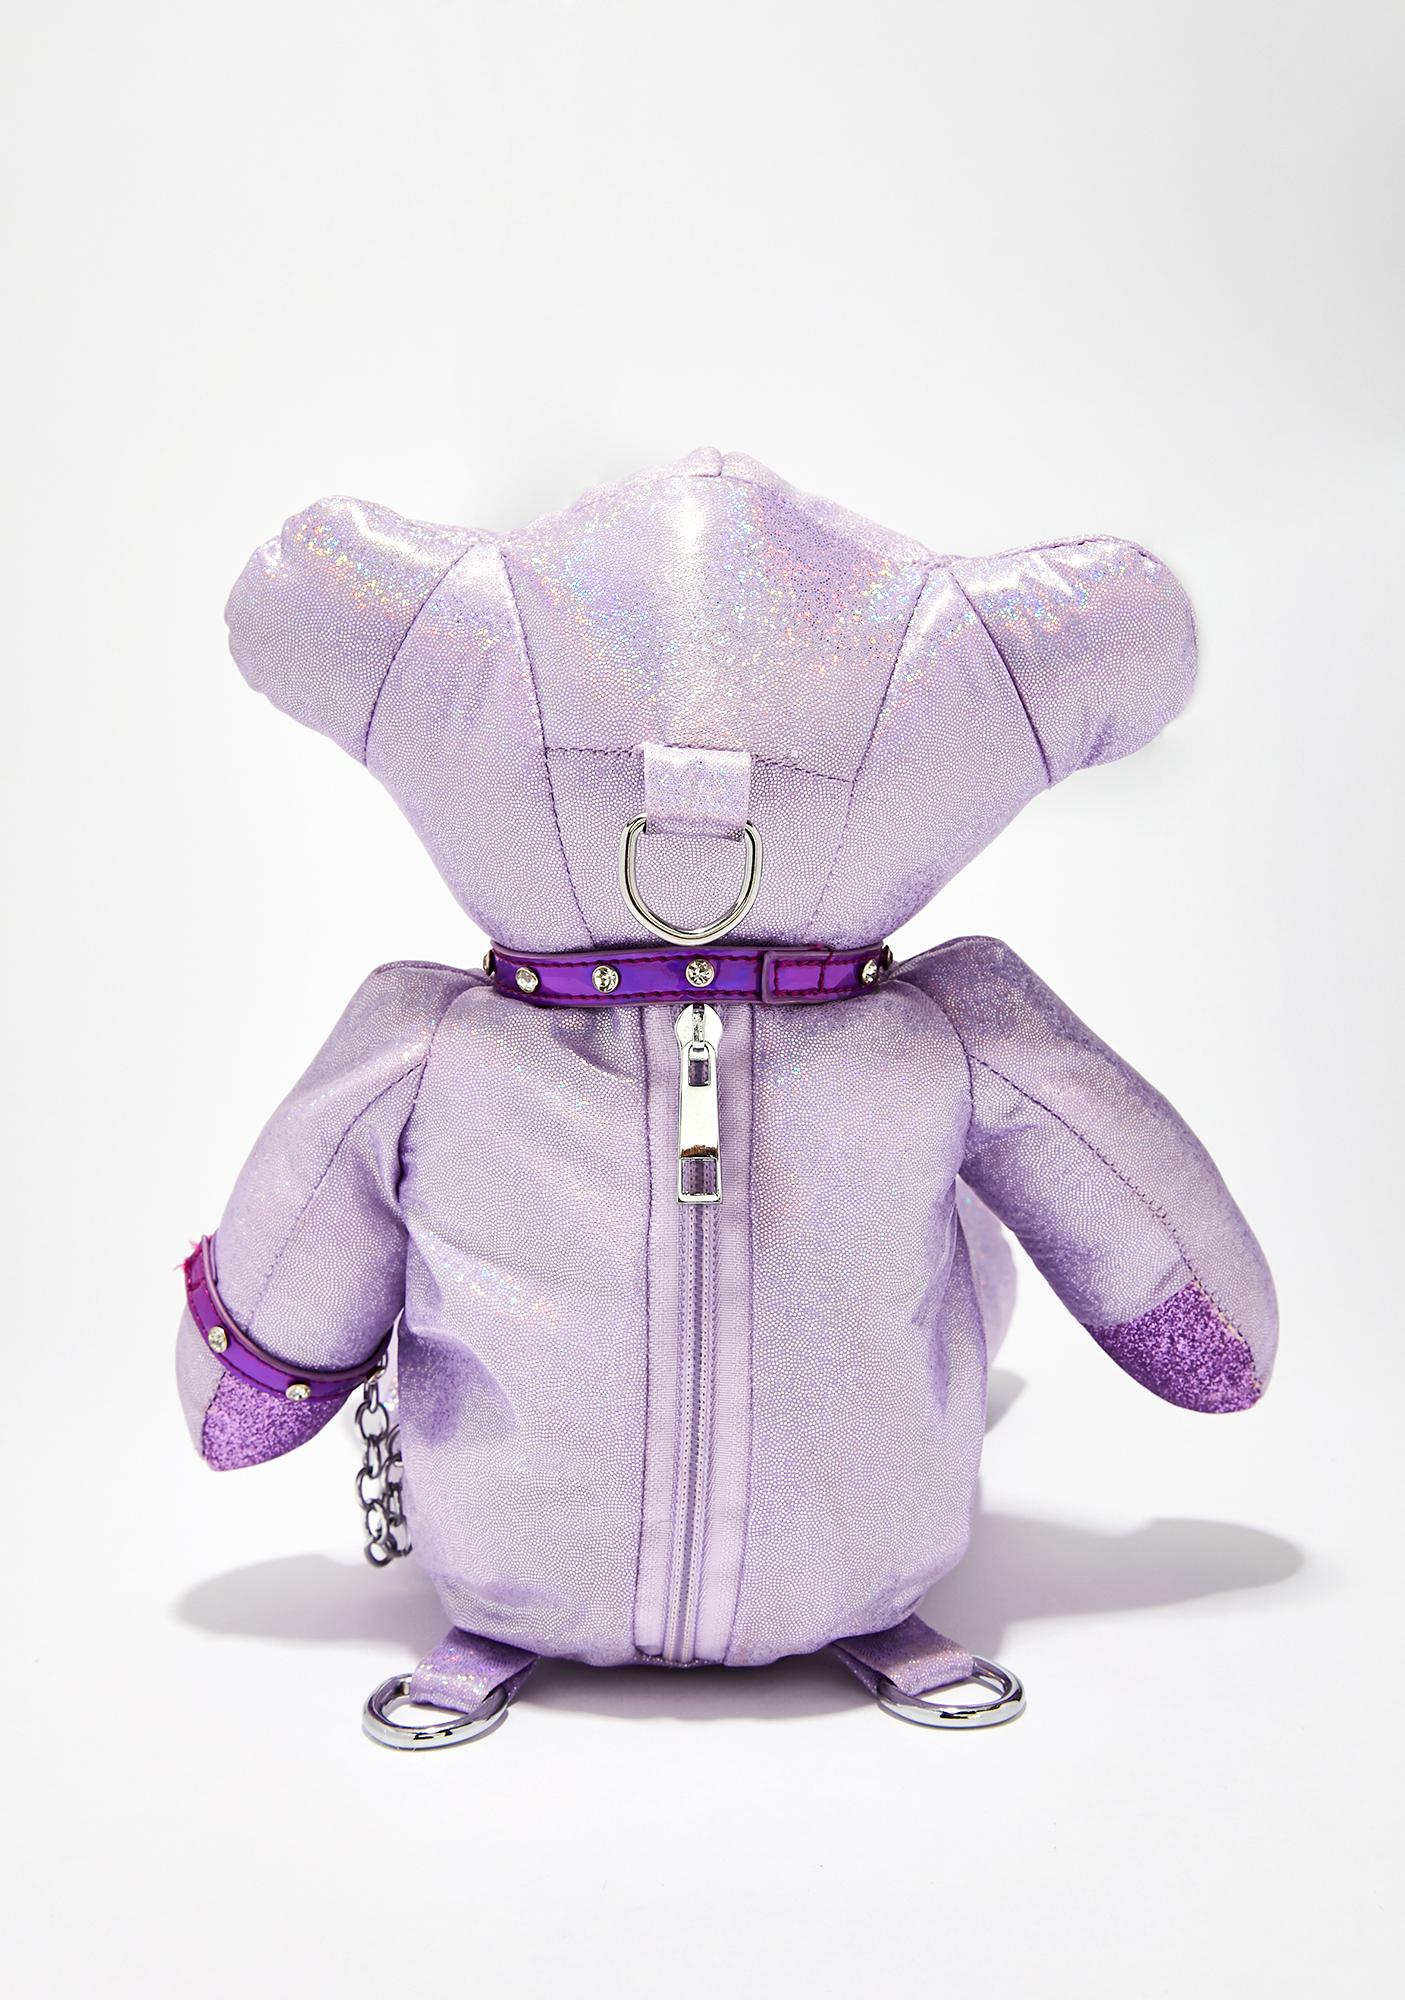 Club Exx Sunrise Sidekick Hologram Backpack